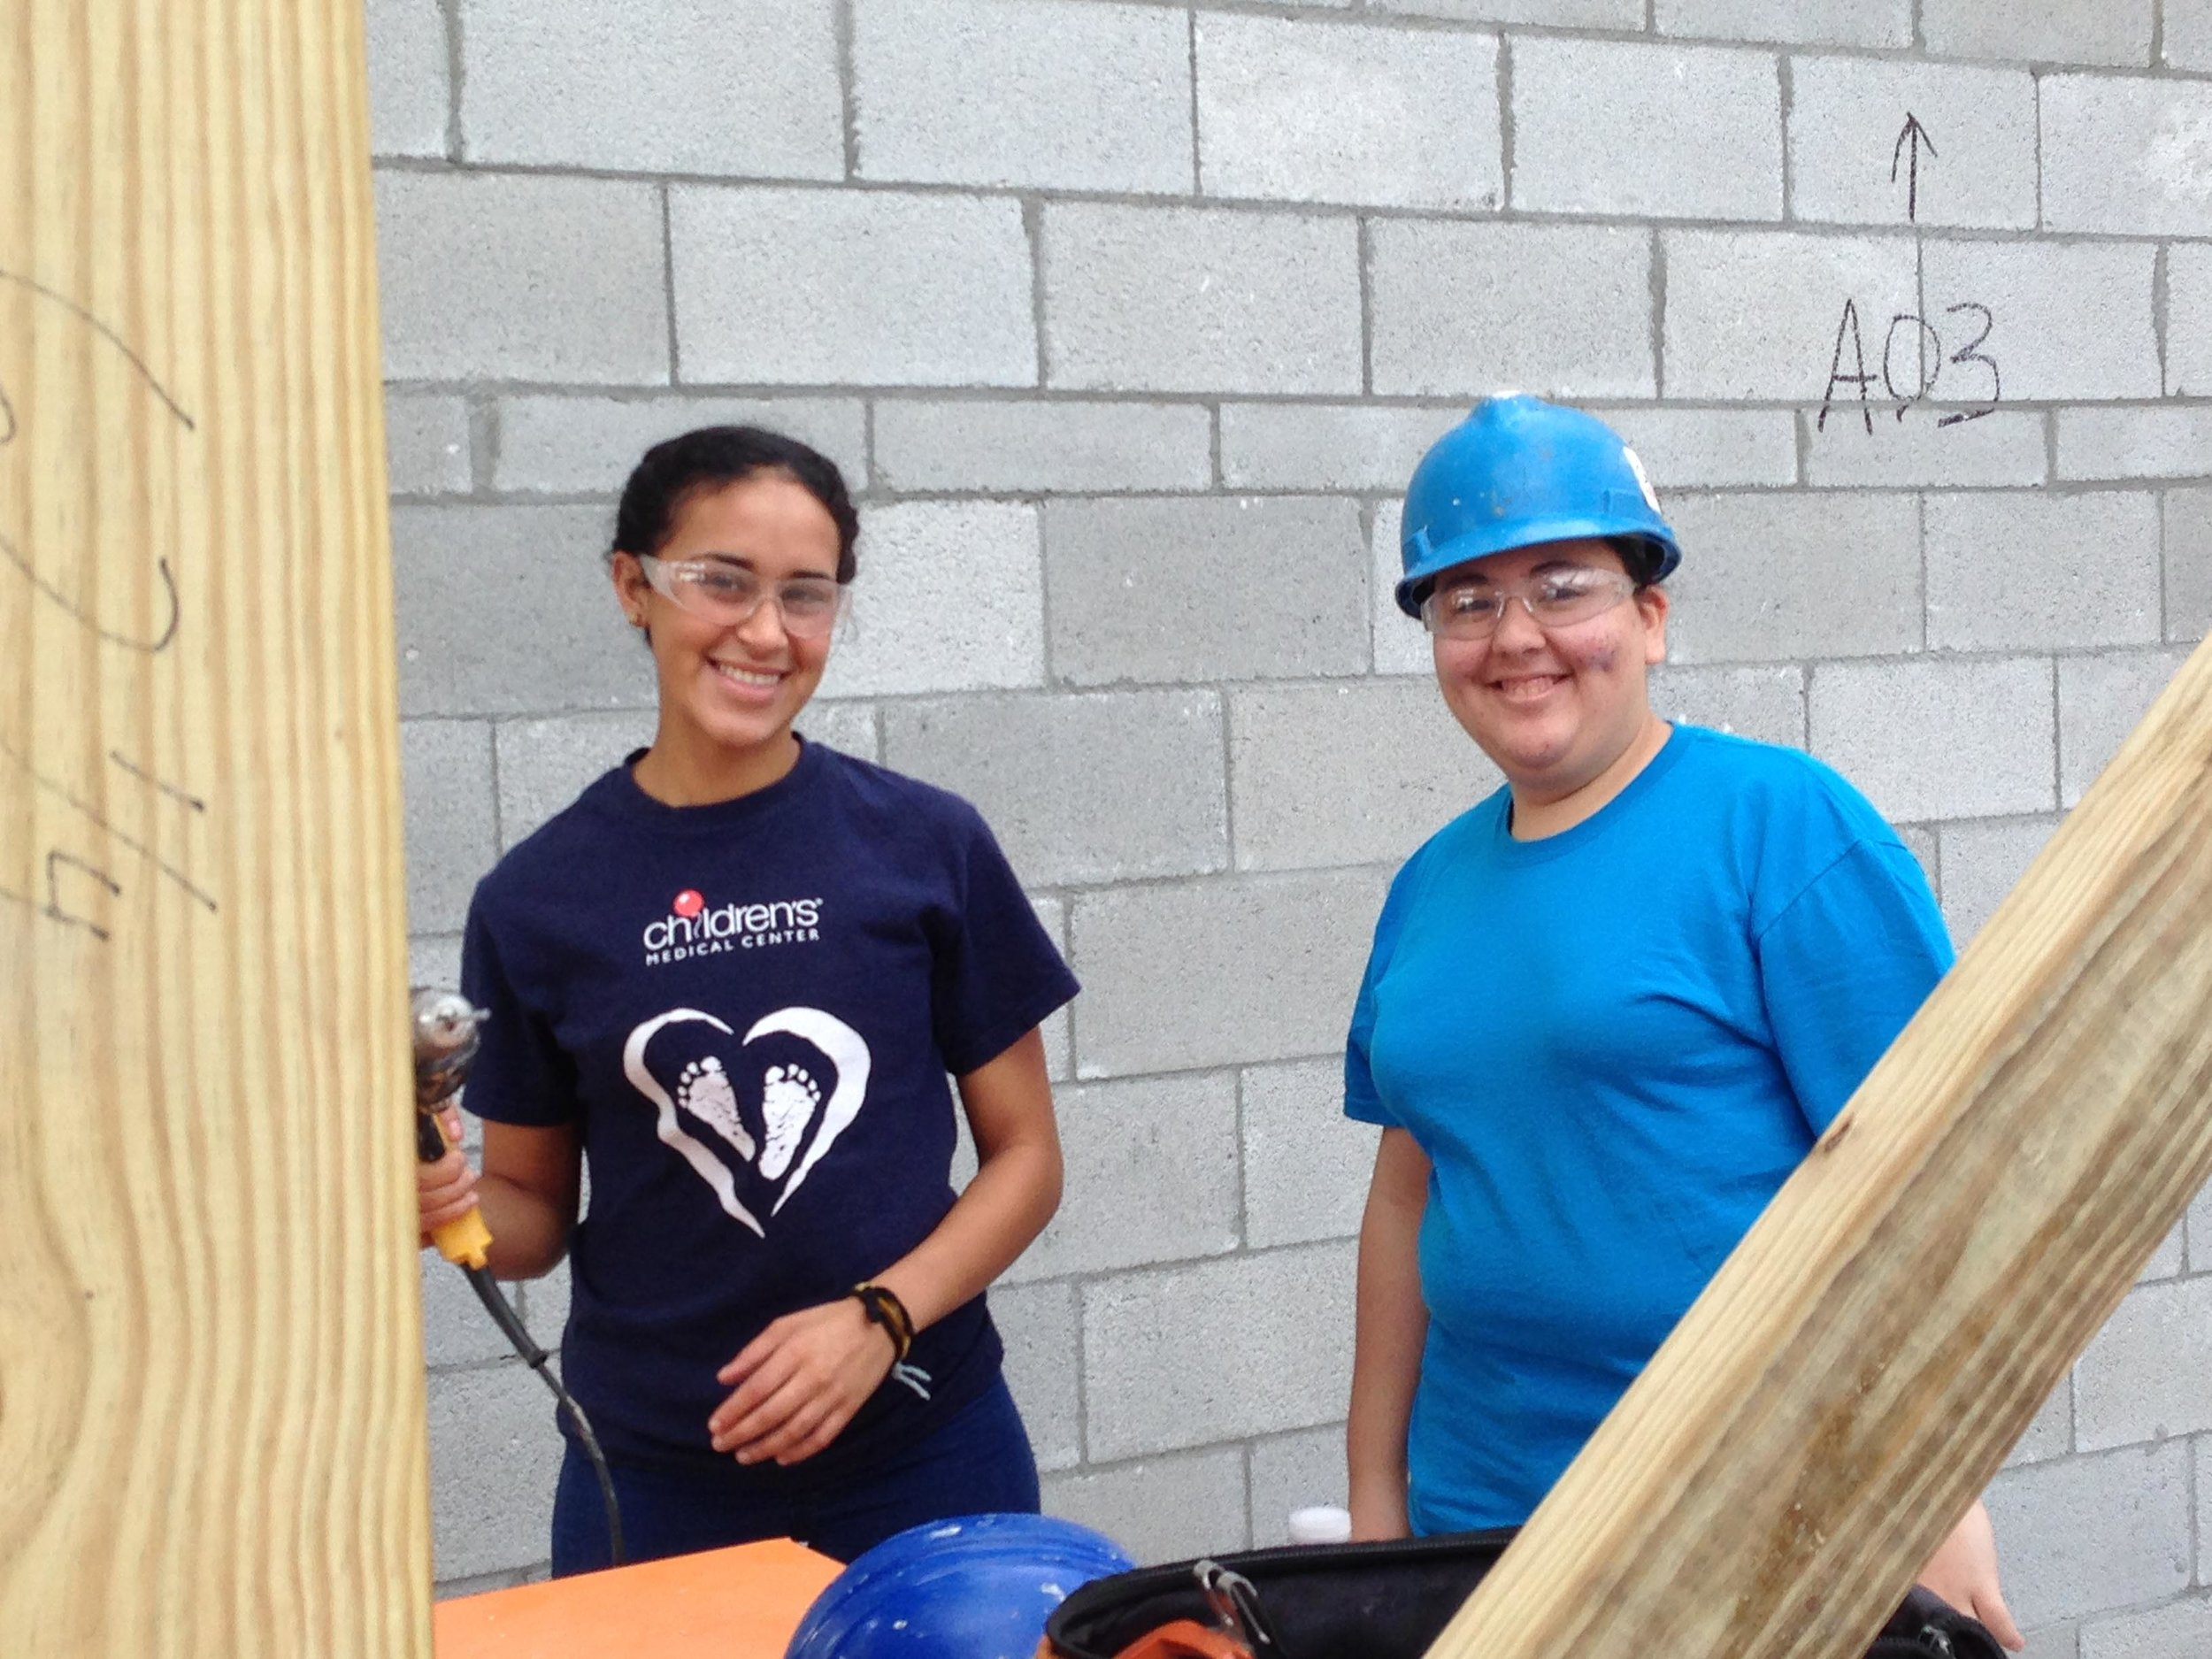 Northwood students Angelica Diaz-Martinez (left) and Melanie Gil volunteer at the Habitat for Humanity project.